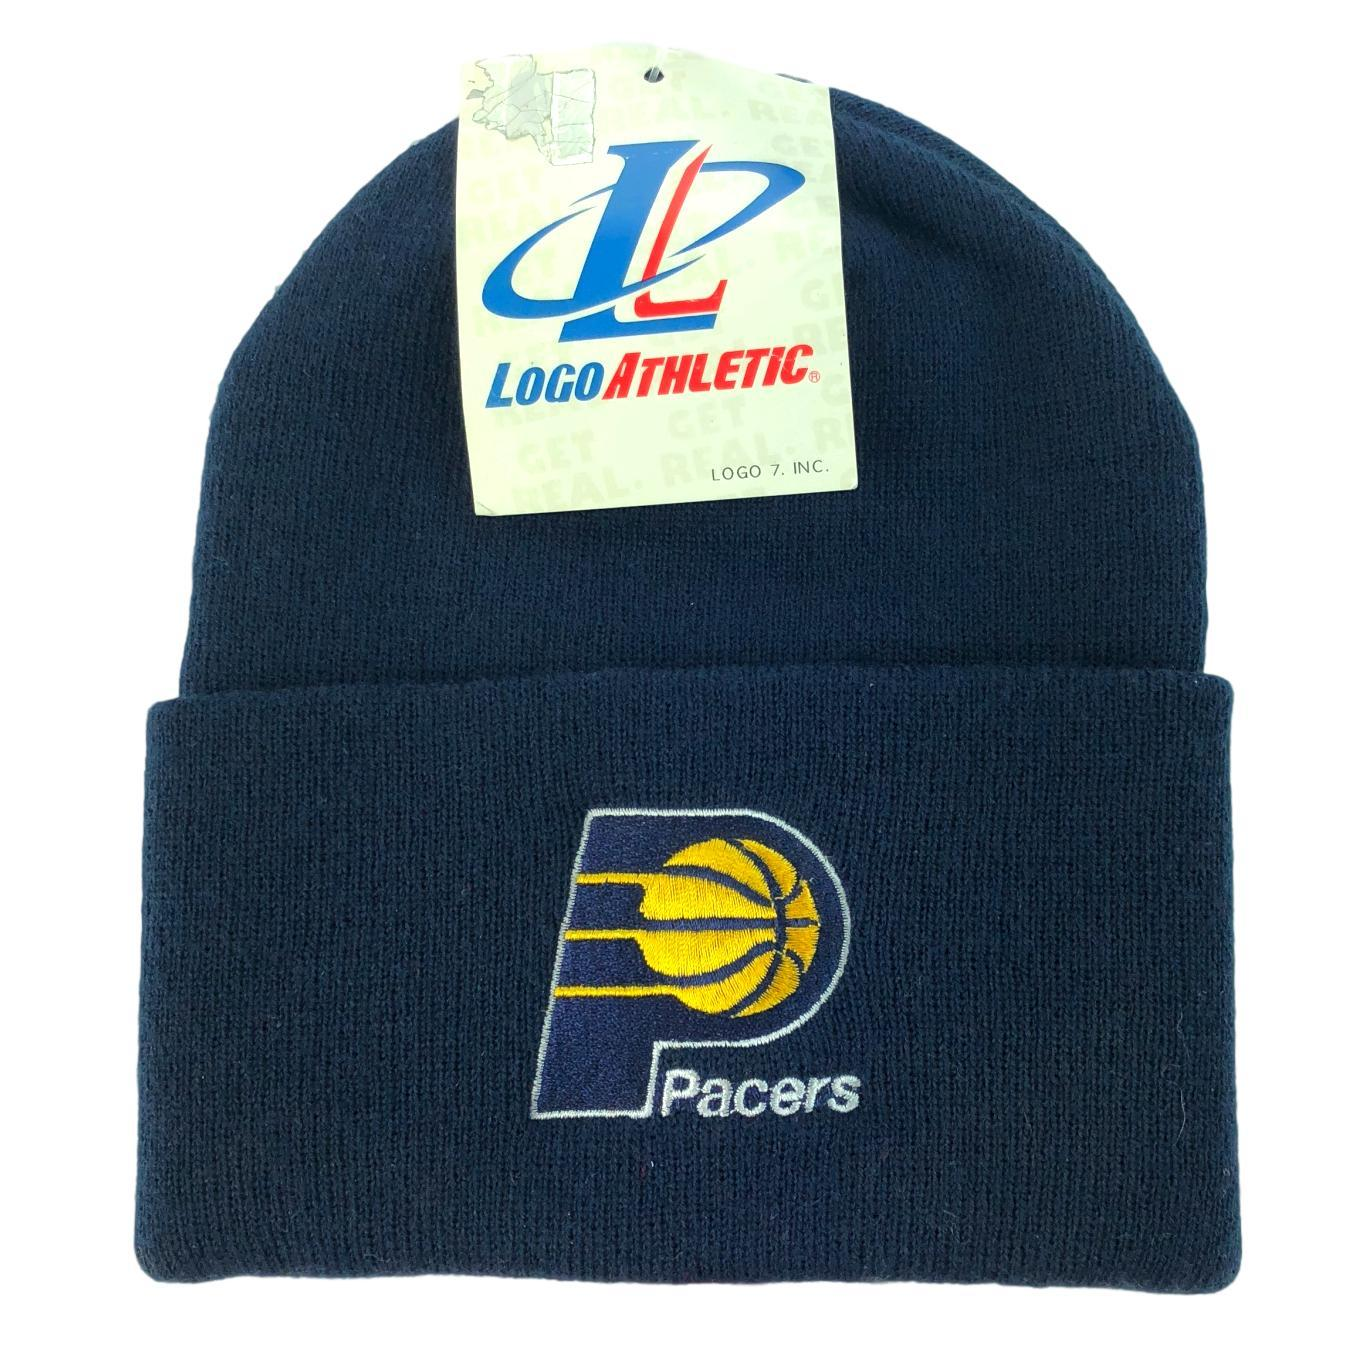 Vintage Indiana Pacers Beanie